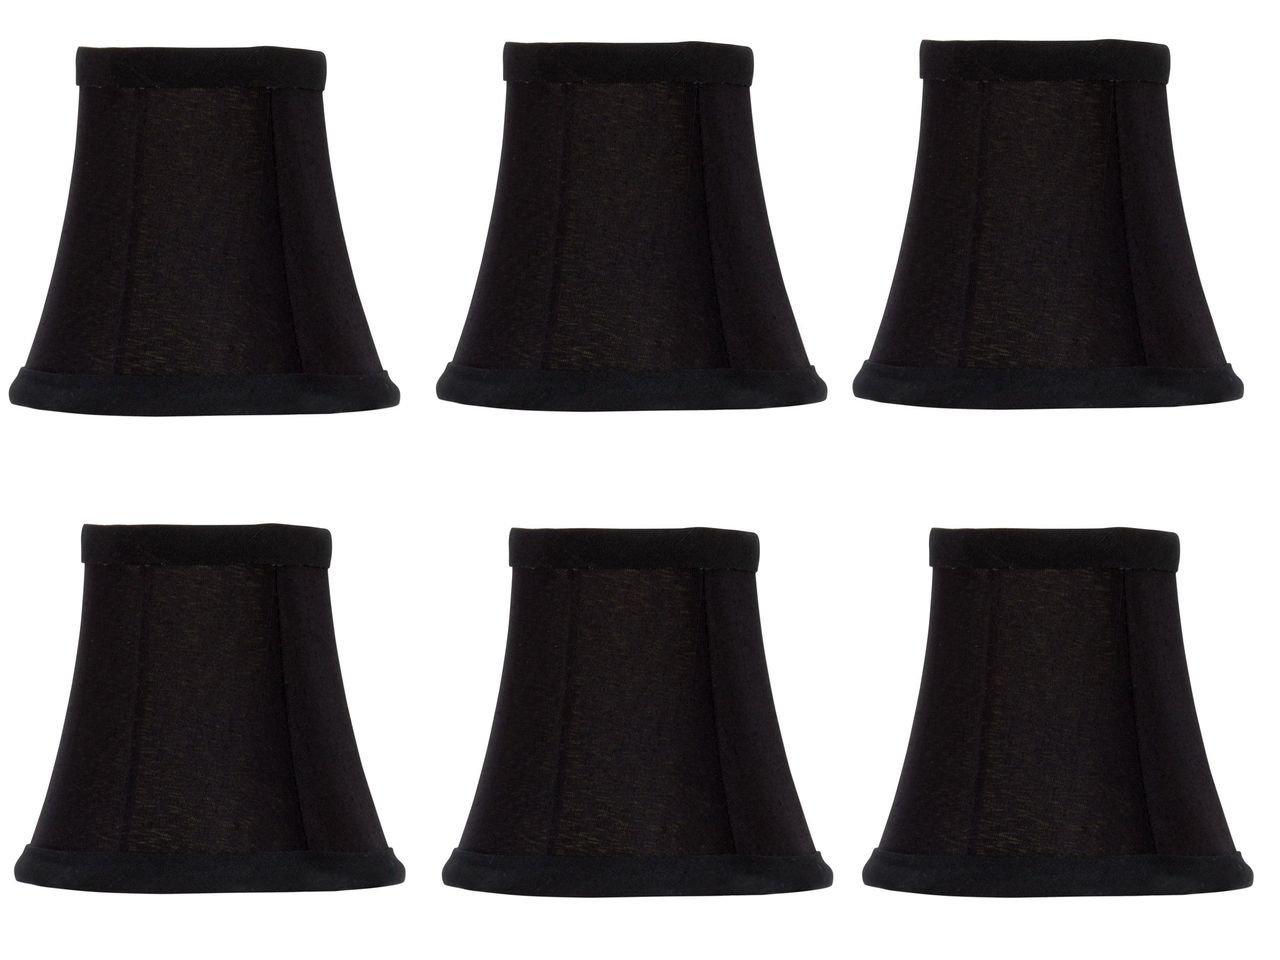 Upgradelights Black Silk with Gold Interior 5 Inch Soft Bell Shaped Clip On Chandelier Lampshades (Set of 6) 2.5x5x4